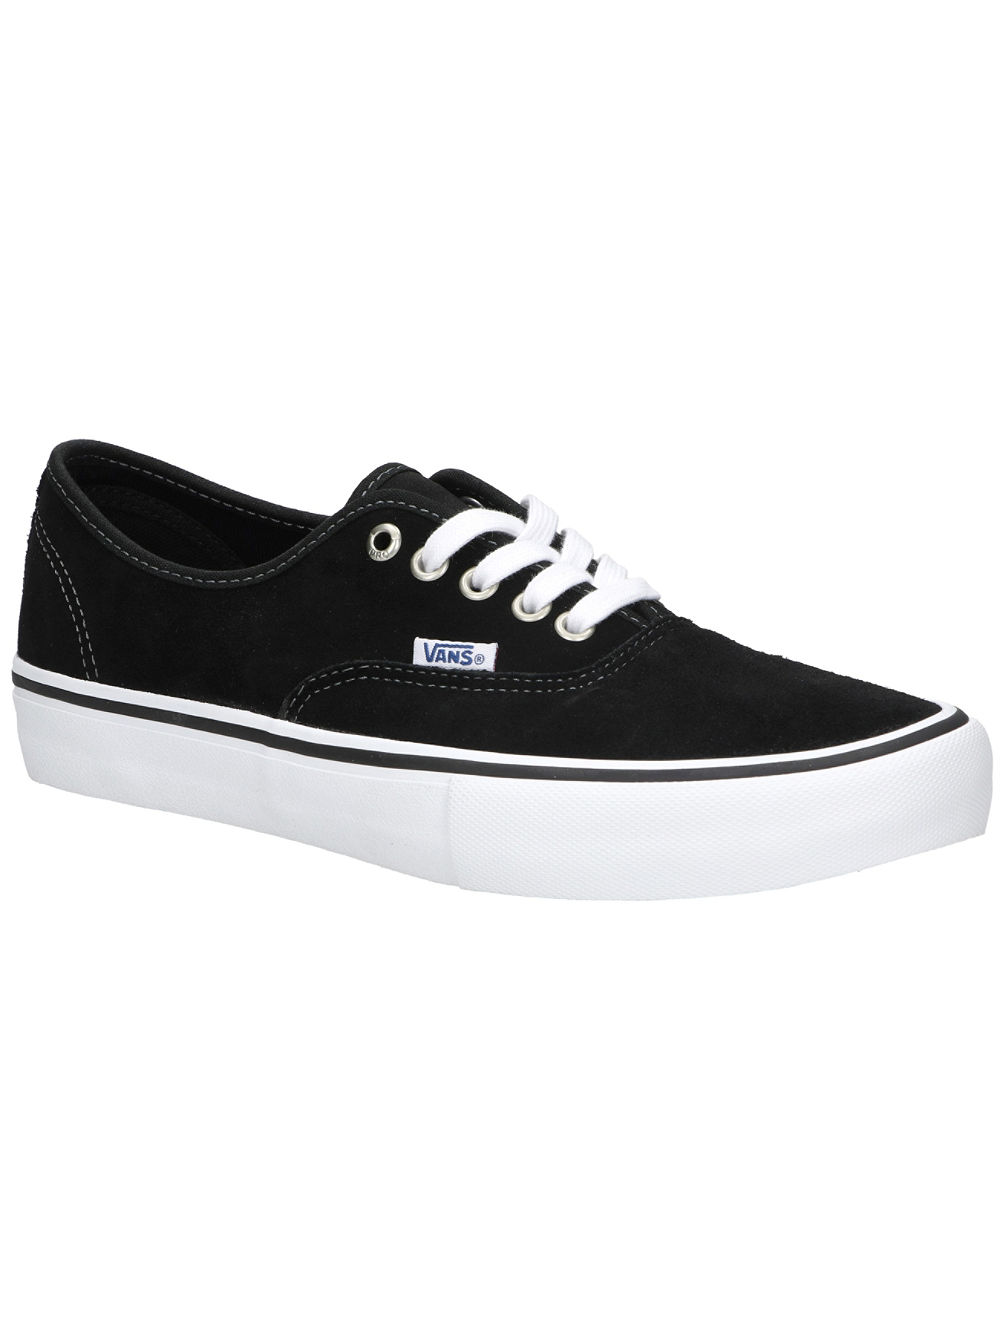 64ecdf003474 Buy Vans Suede Authentic Pro Skate Shoes online at Blue Tomato